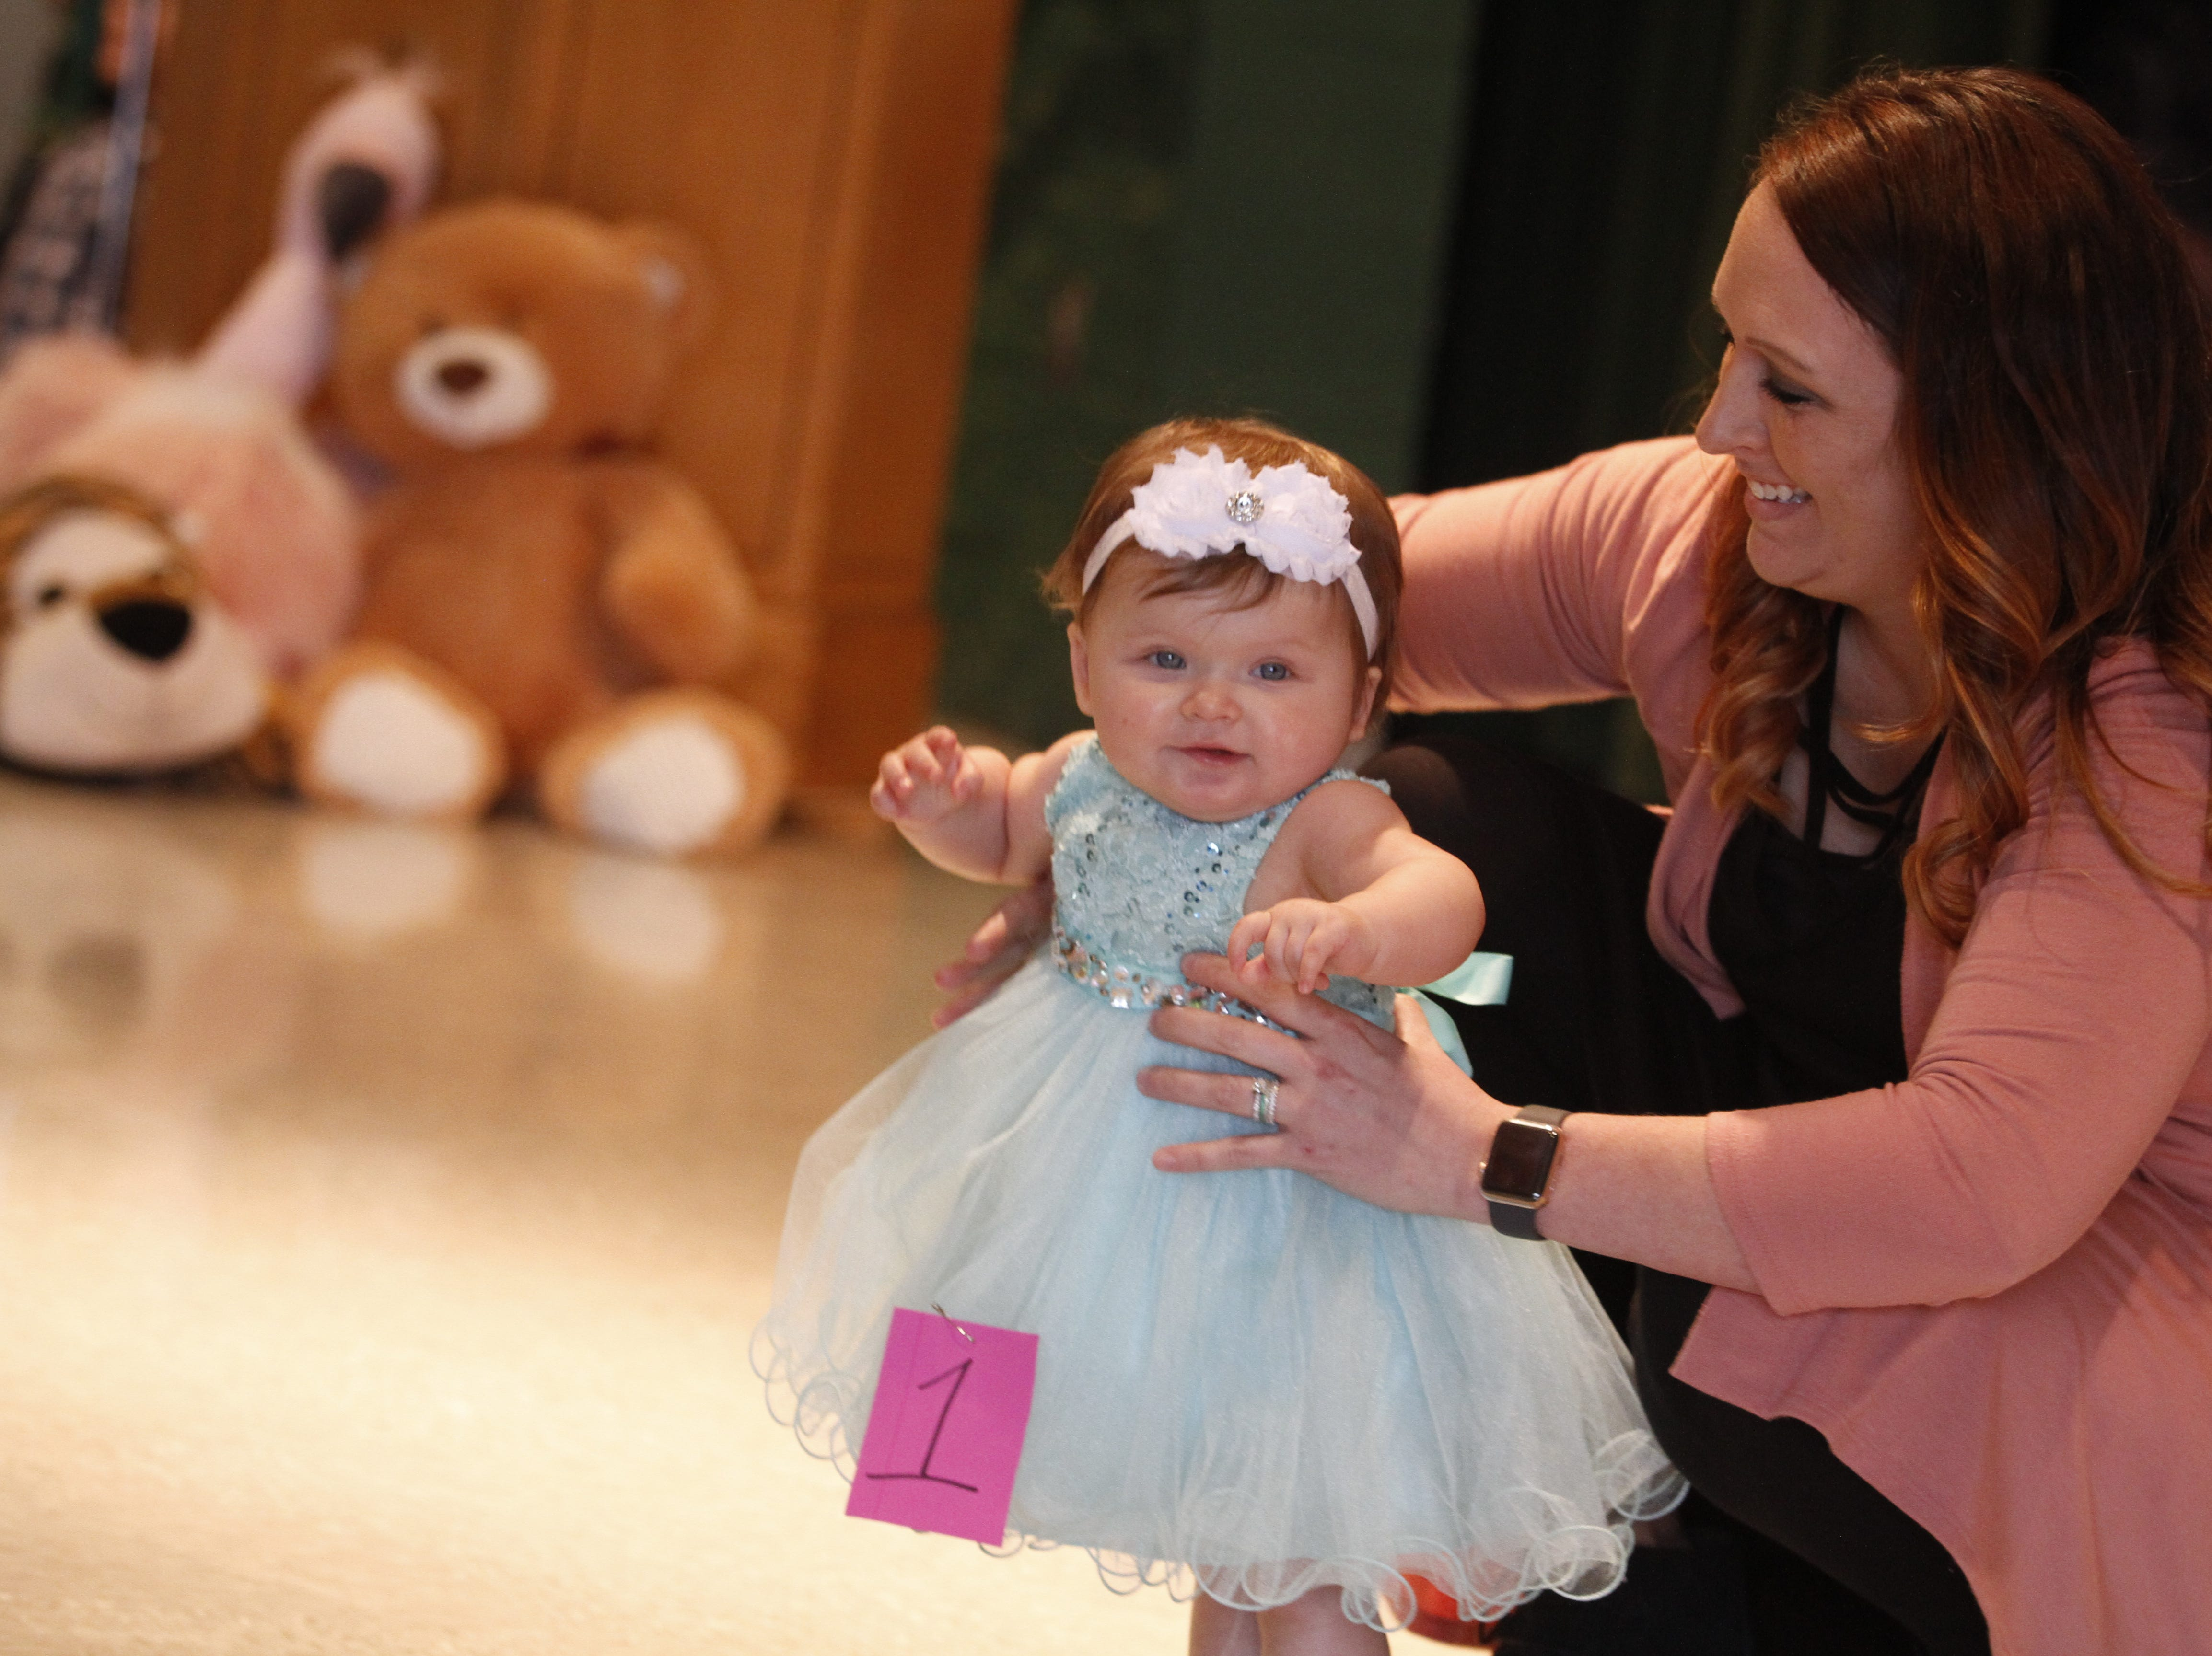 Heather Lewis assists her daughter Blakely as she competes in the Houston County Tiny Princess 7-12 months group during the 2019 Houston County Tiny Prince, Tiny Princess Pageant at Houston County High School, on Saturday, March 2, 2019 in Erin, Tenn.